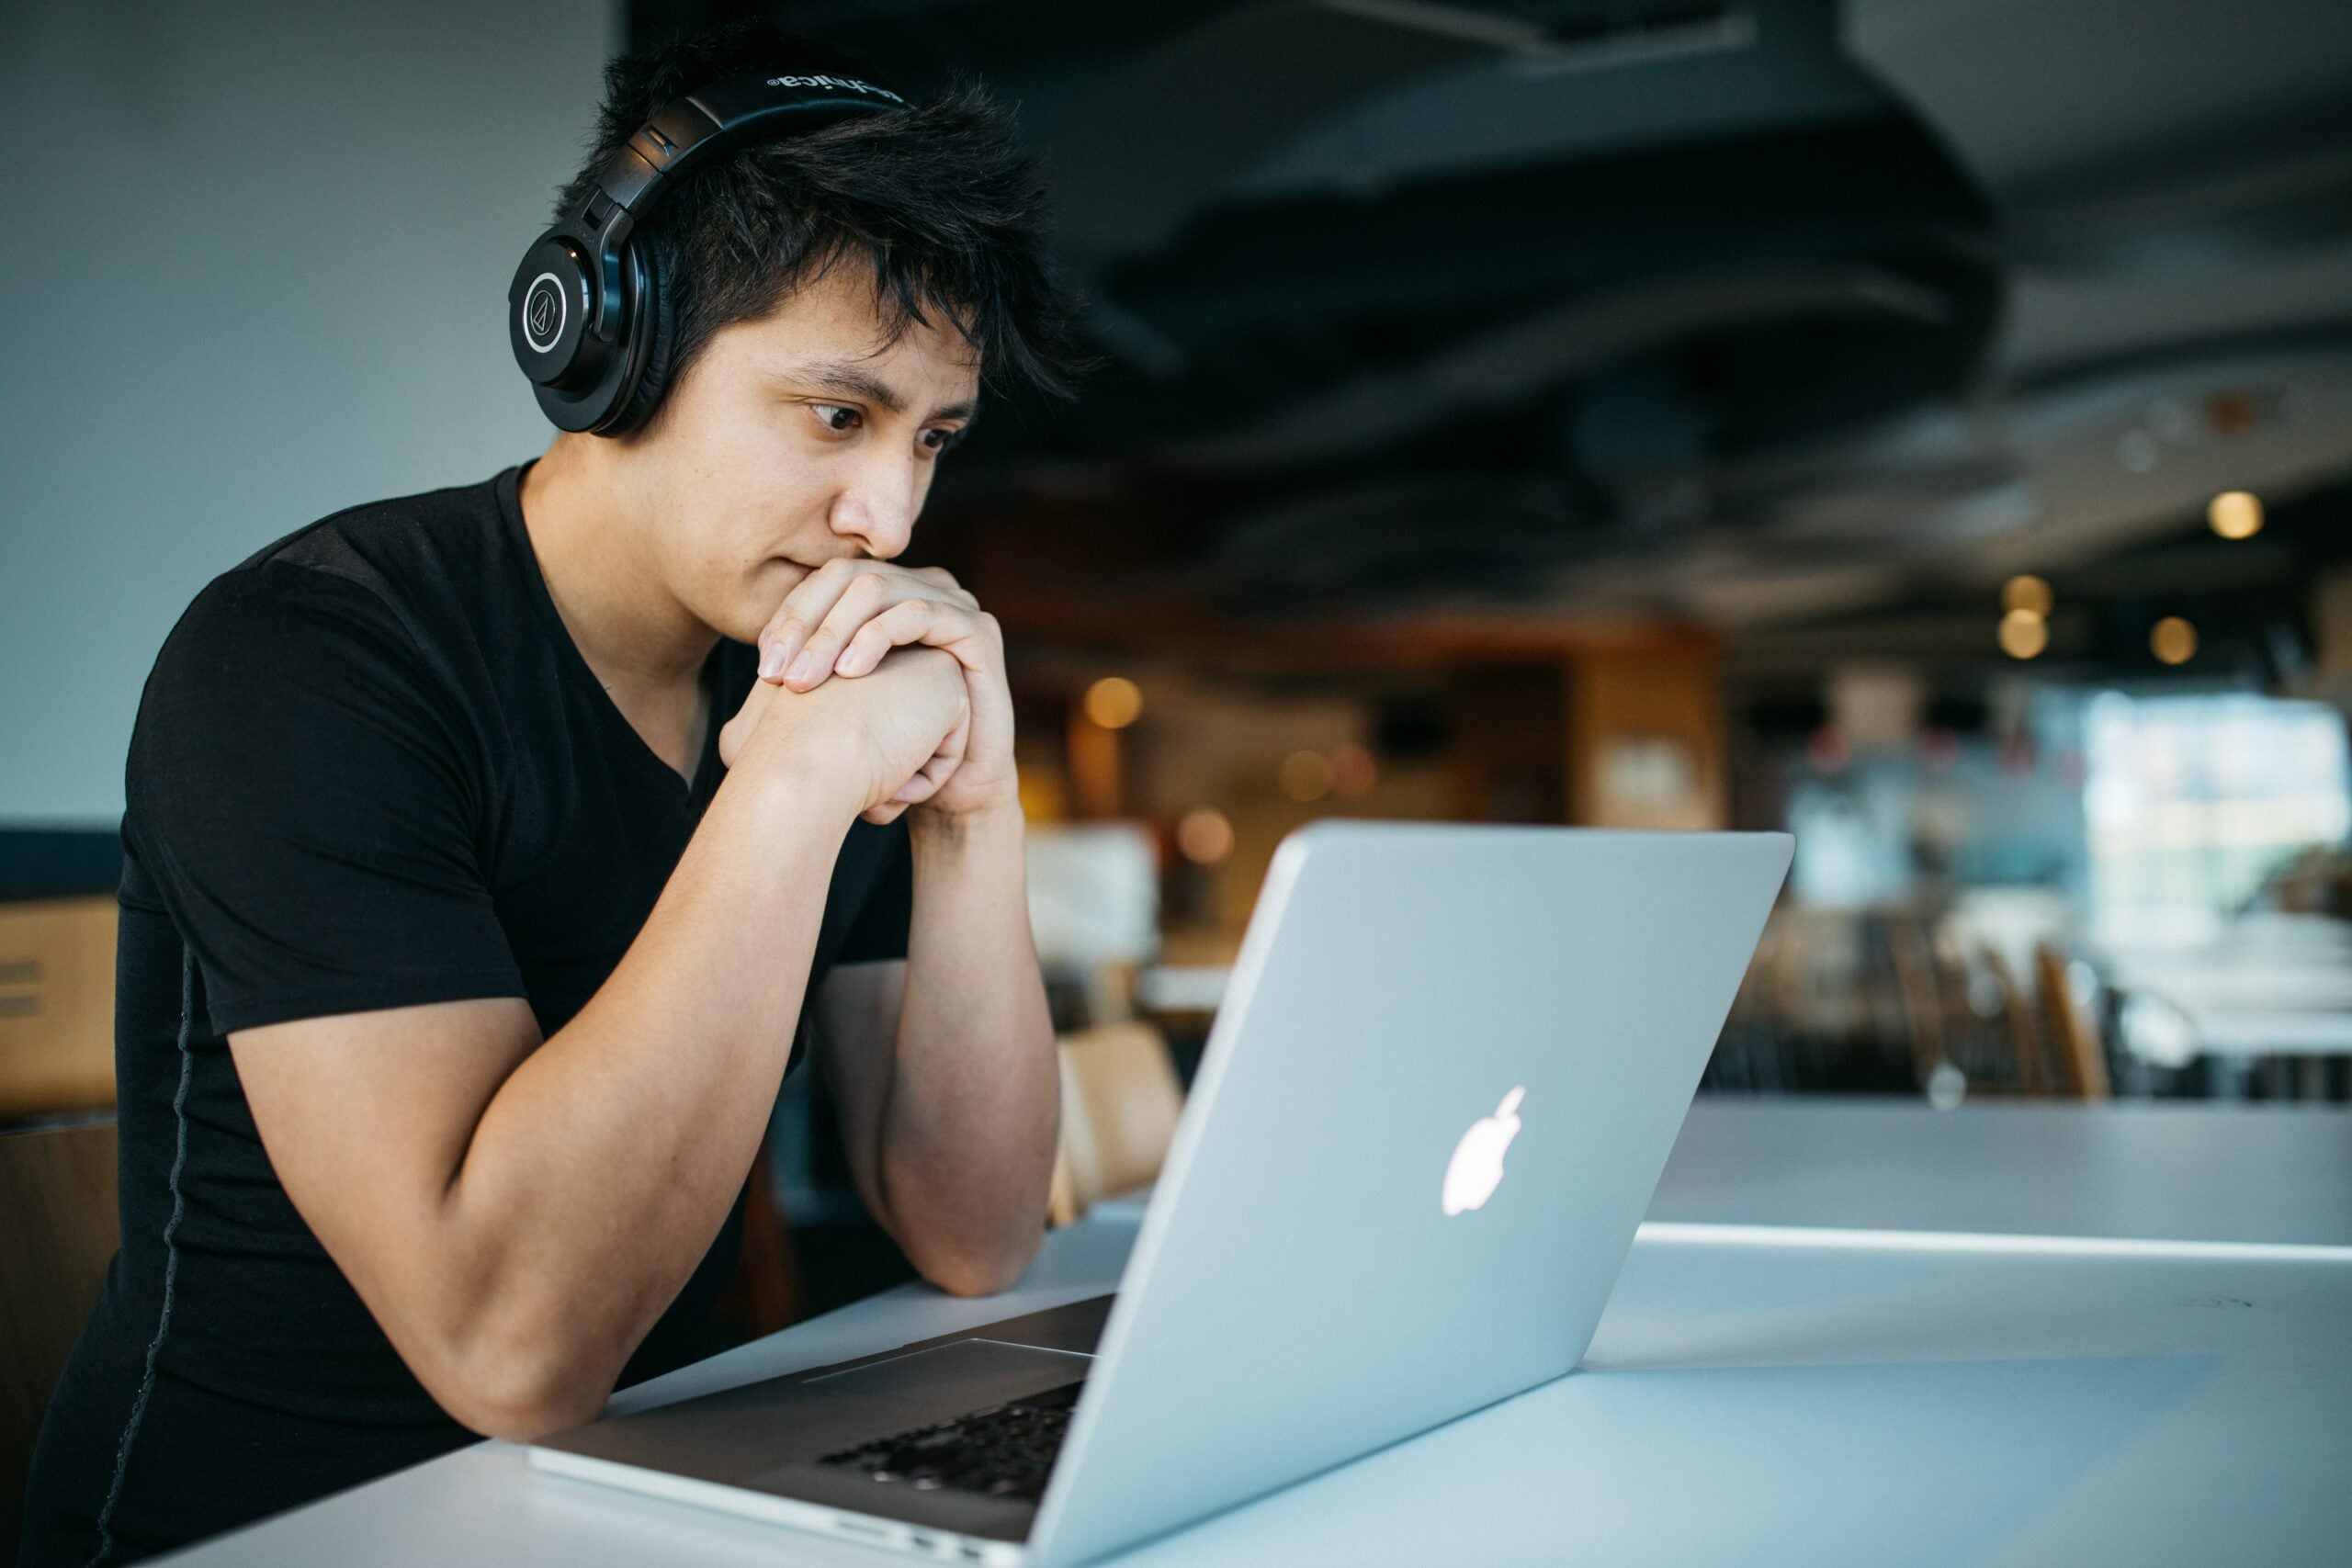 Worker sitting at Mac laptop with wireless headphones on